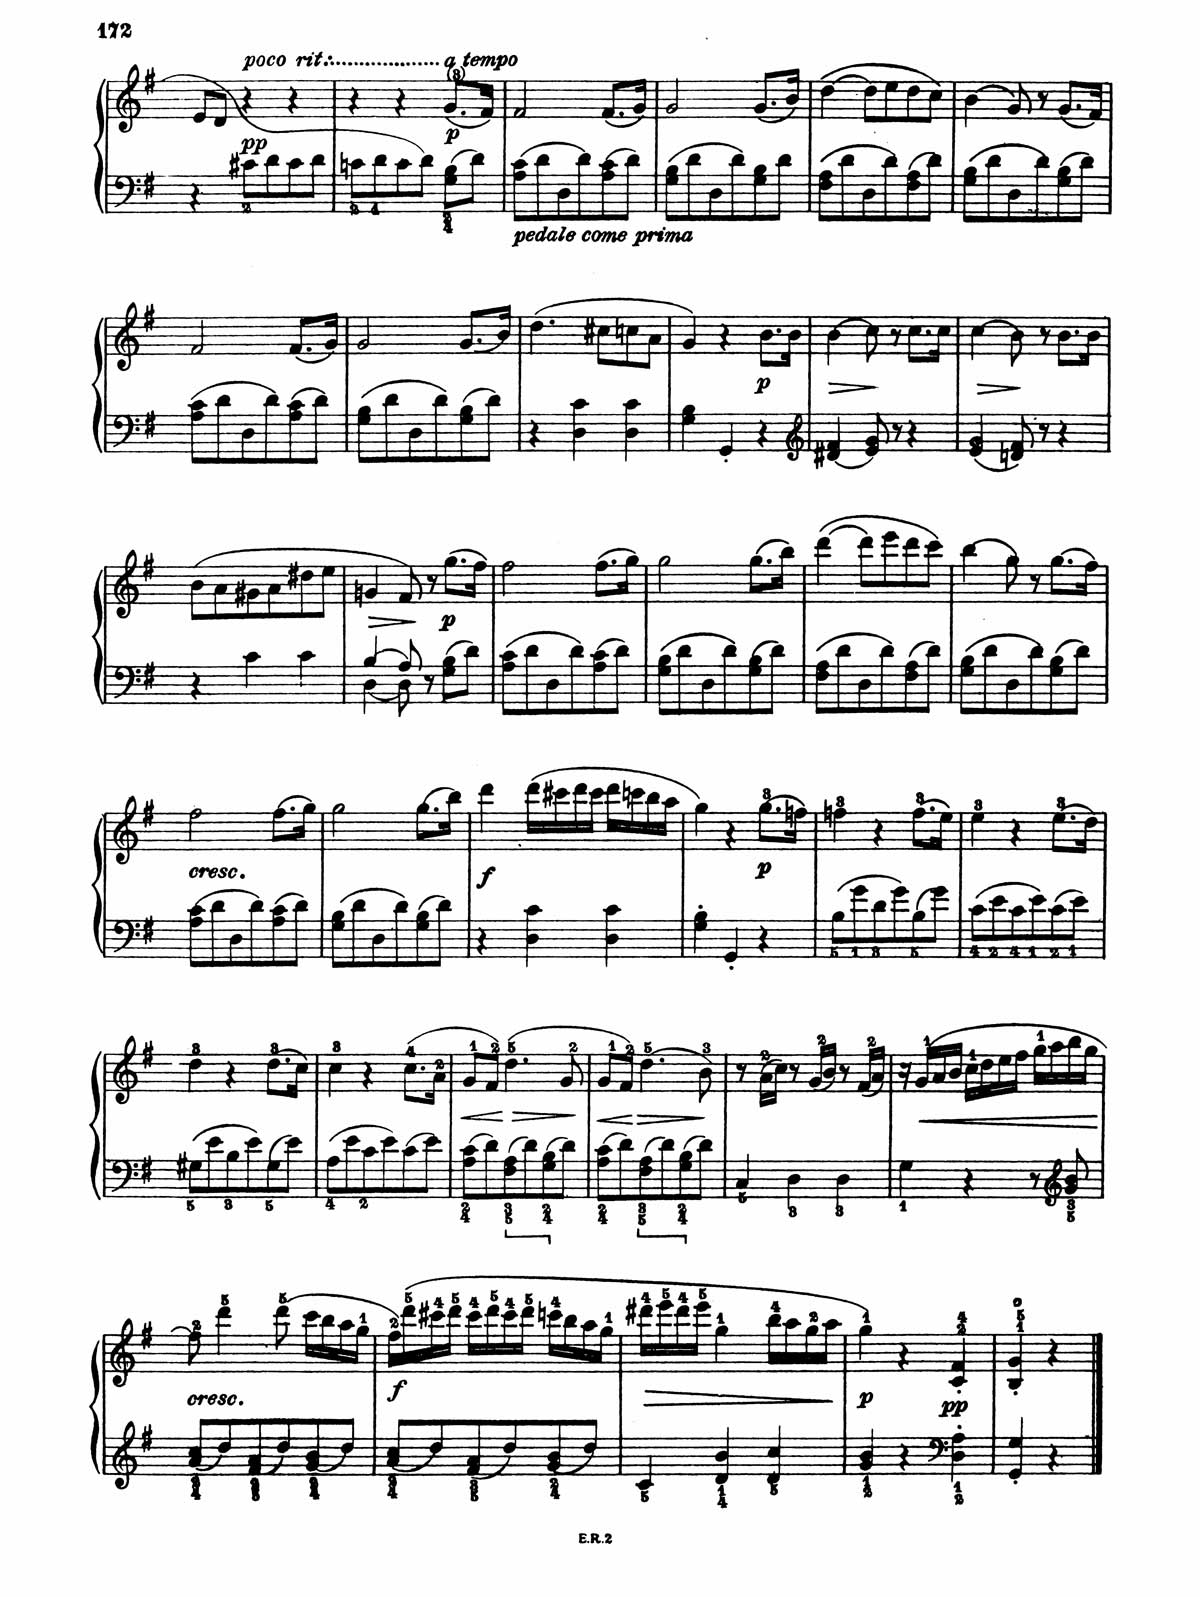 Beethoven Piano Sonata 20-9 sheet music